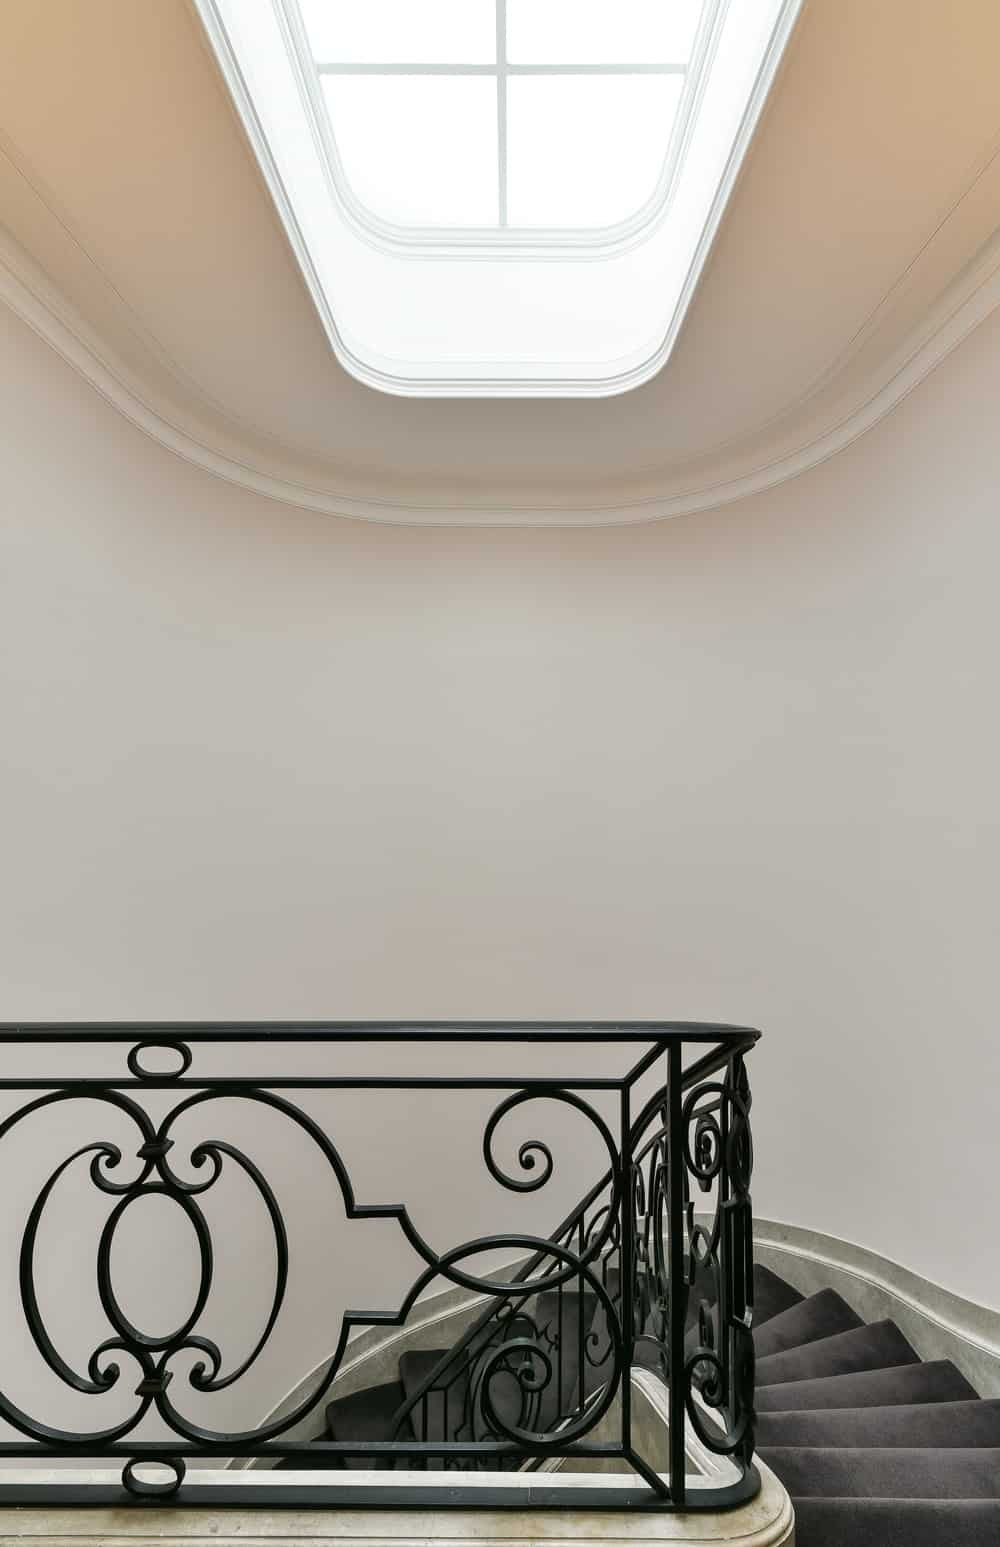 Top of the staircase featuring a skylight. Photo credit: Mickaël Martins Afonso